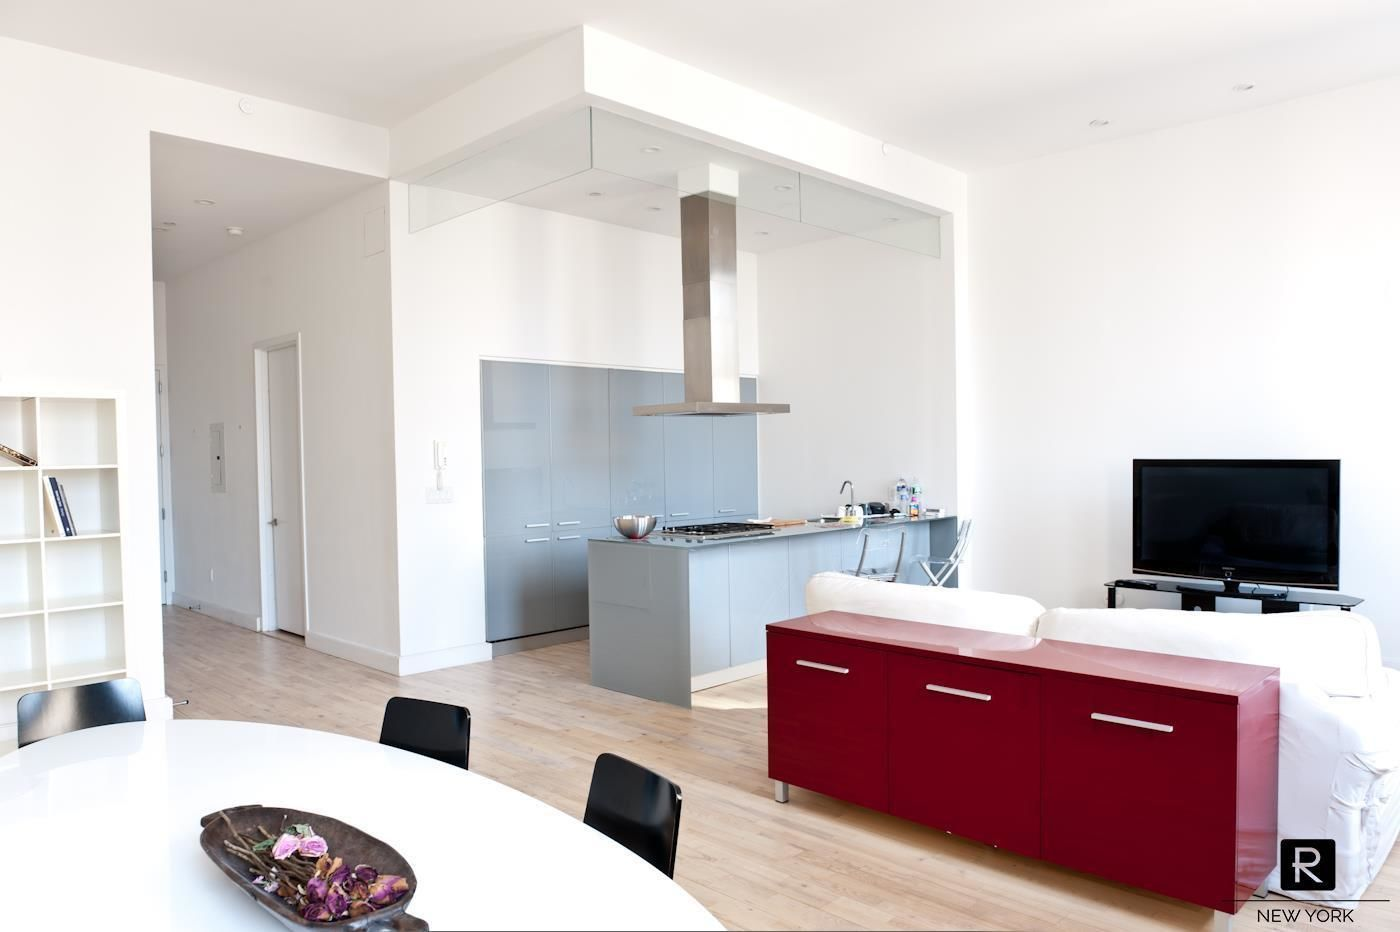 Apartment for sale at 420 West 25th Street, Apt 8-B